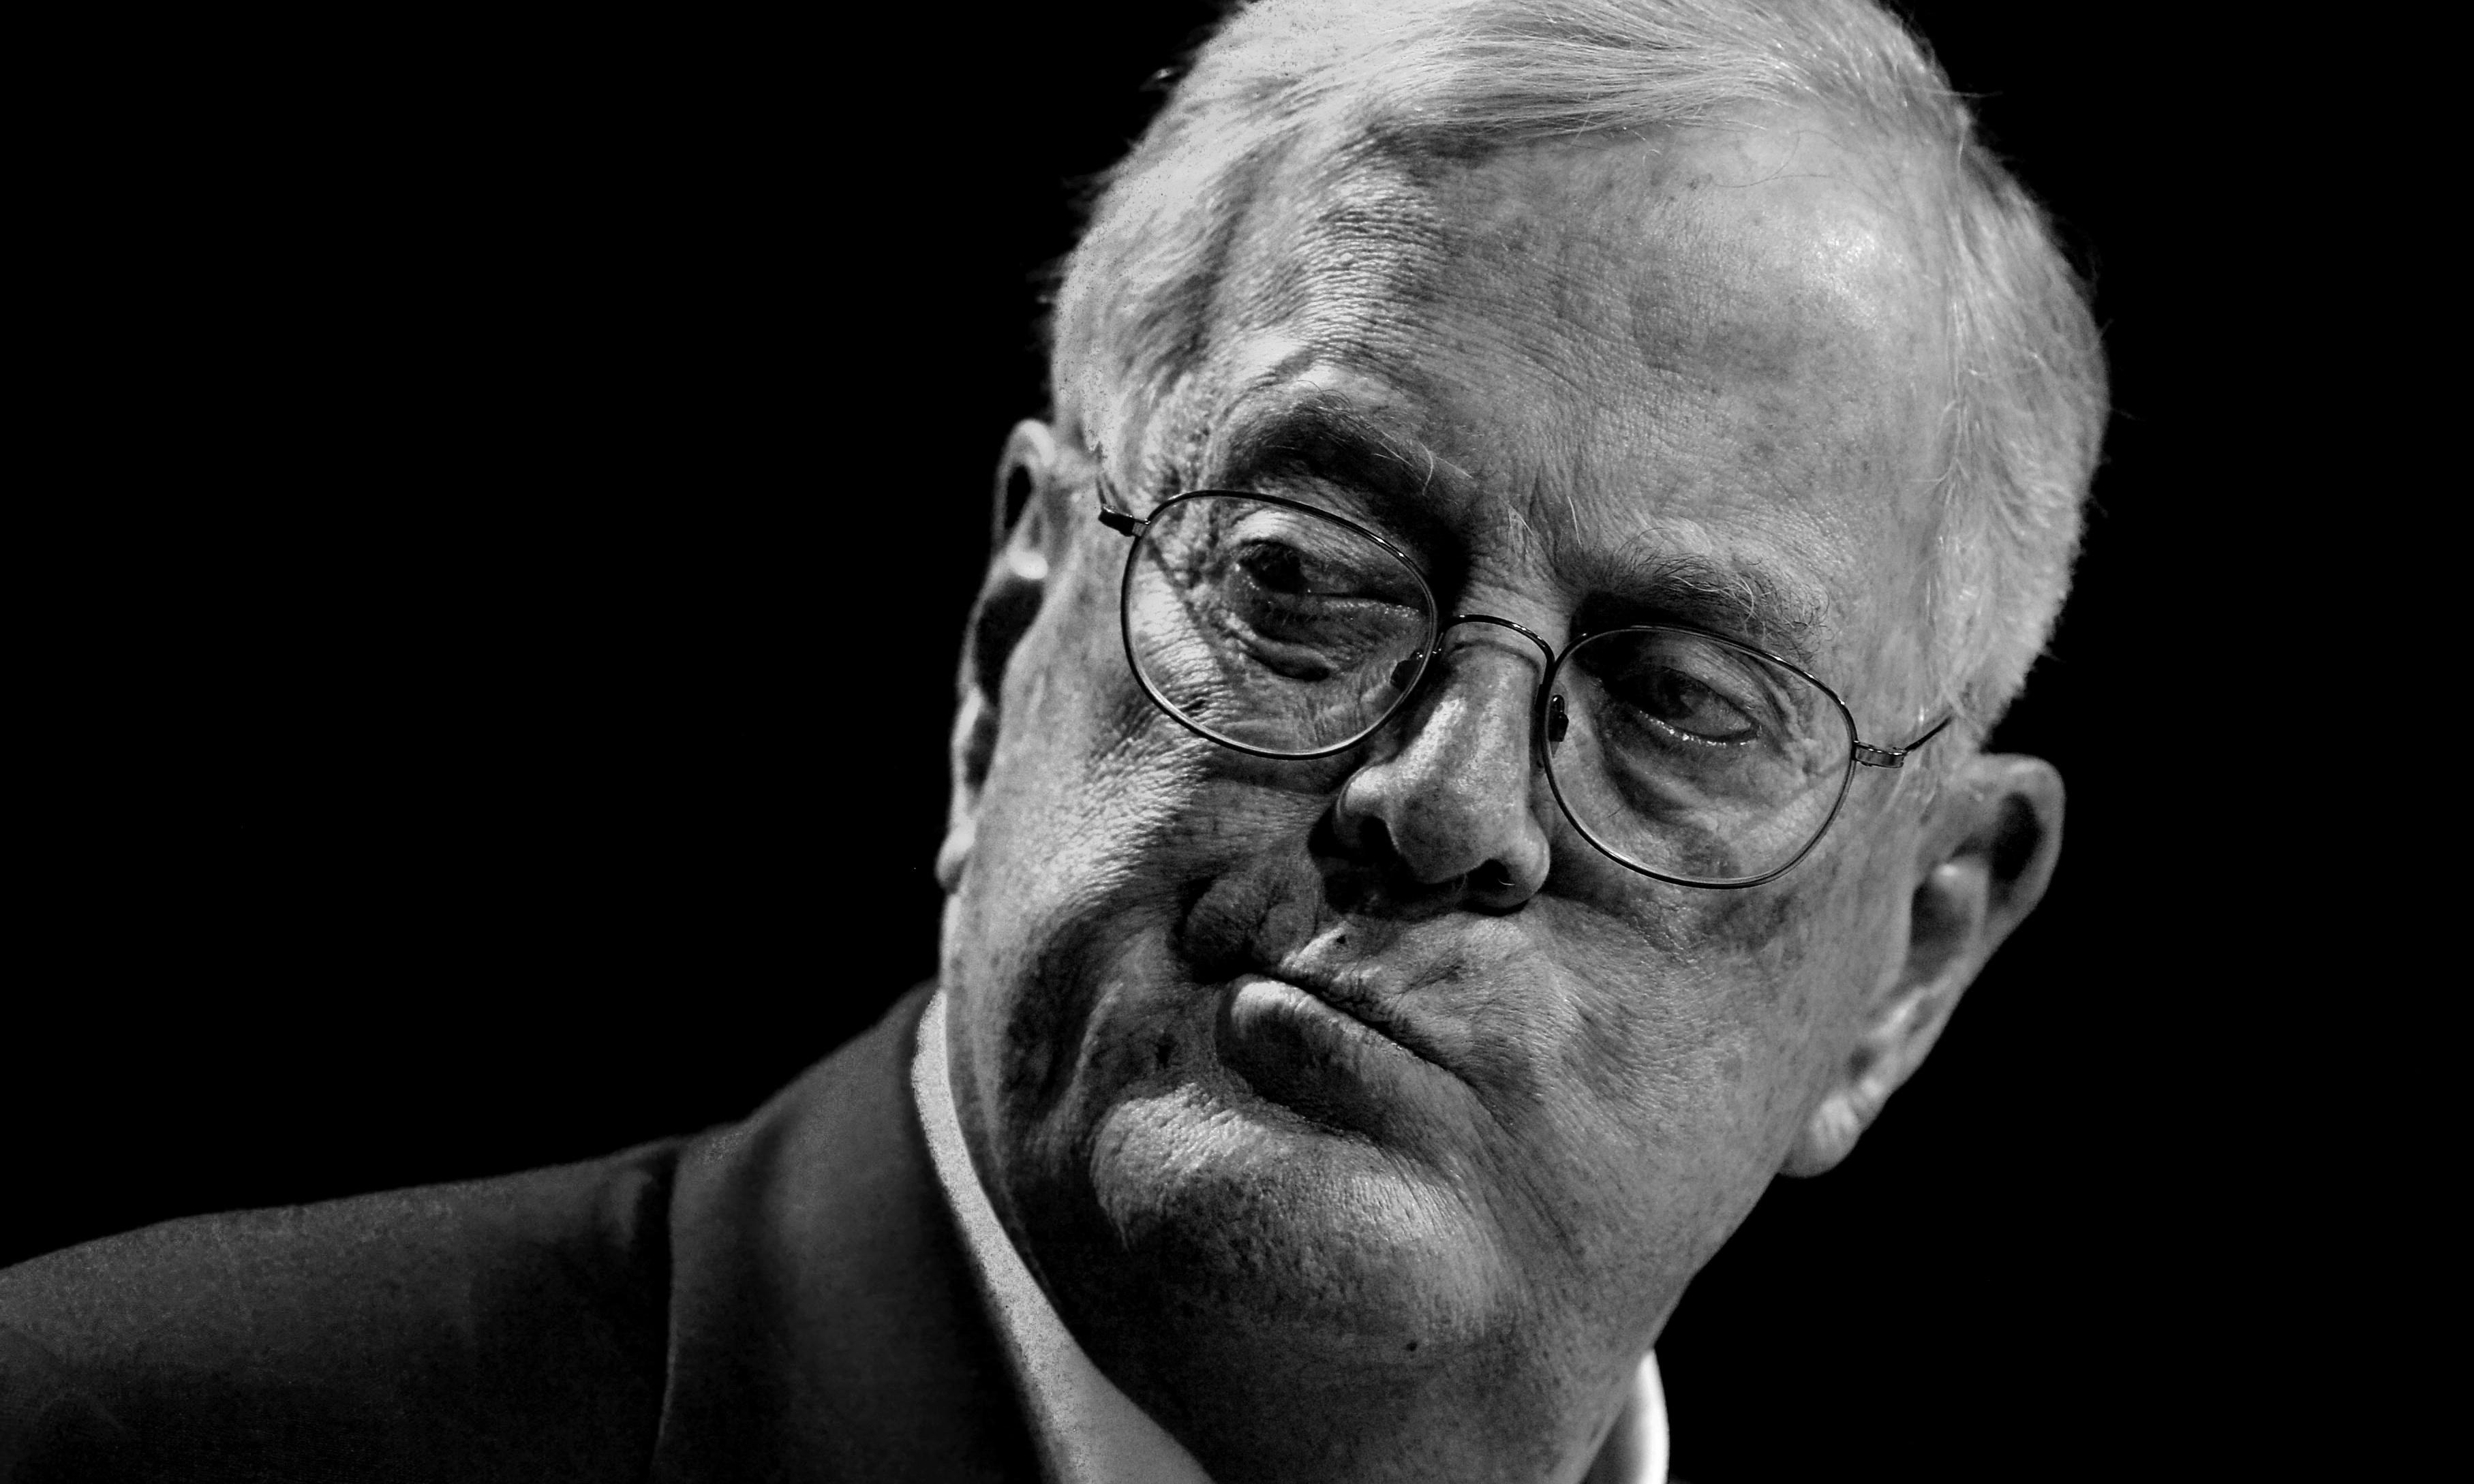 Death and destruction: this is David Koch's sad legacy